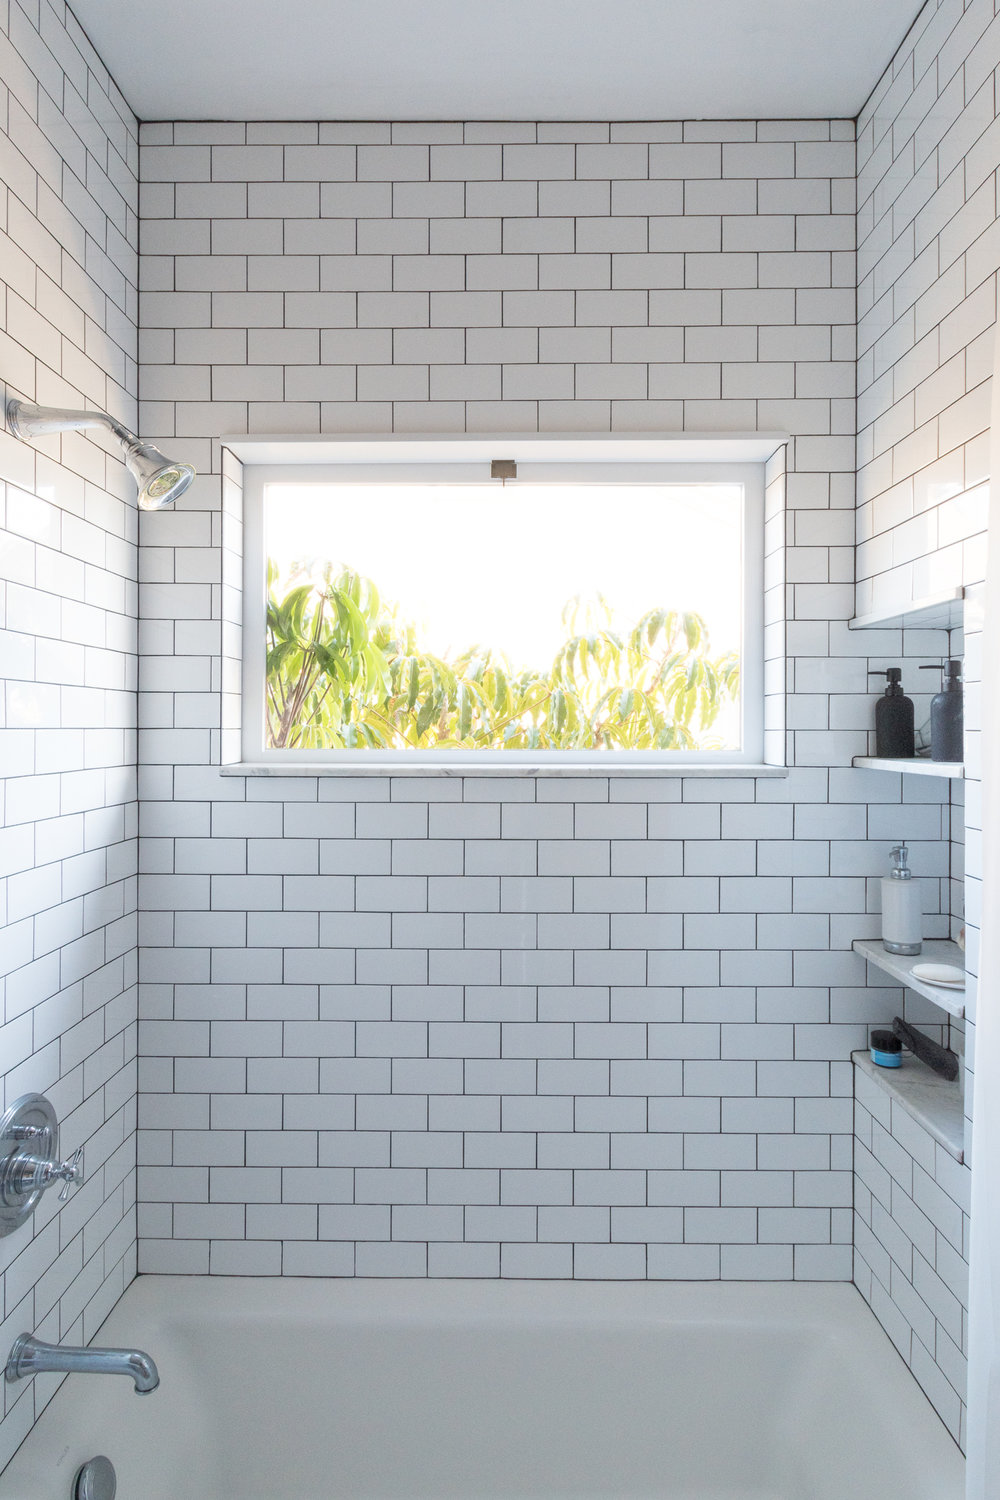 Putting a Custom Wood Window in the Bathroom — The Gold Hive